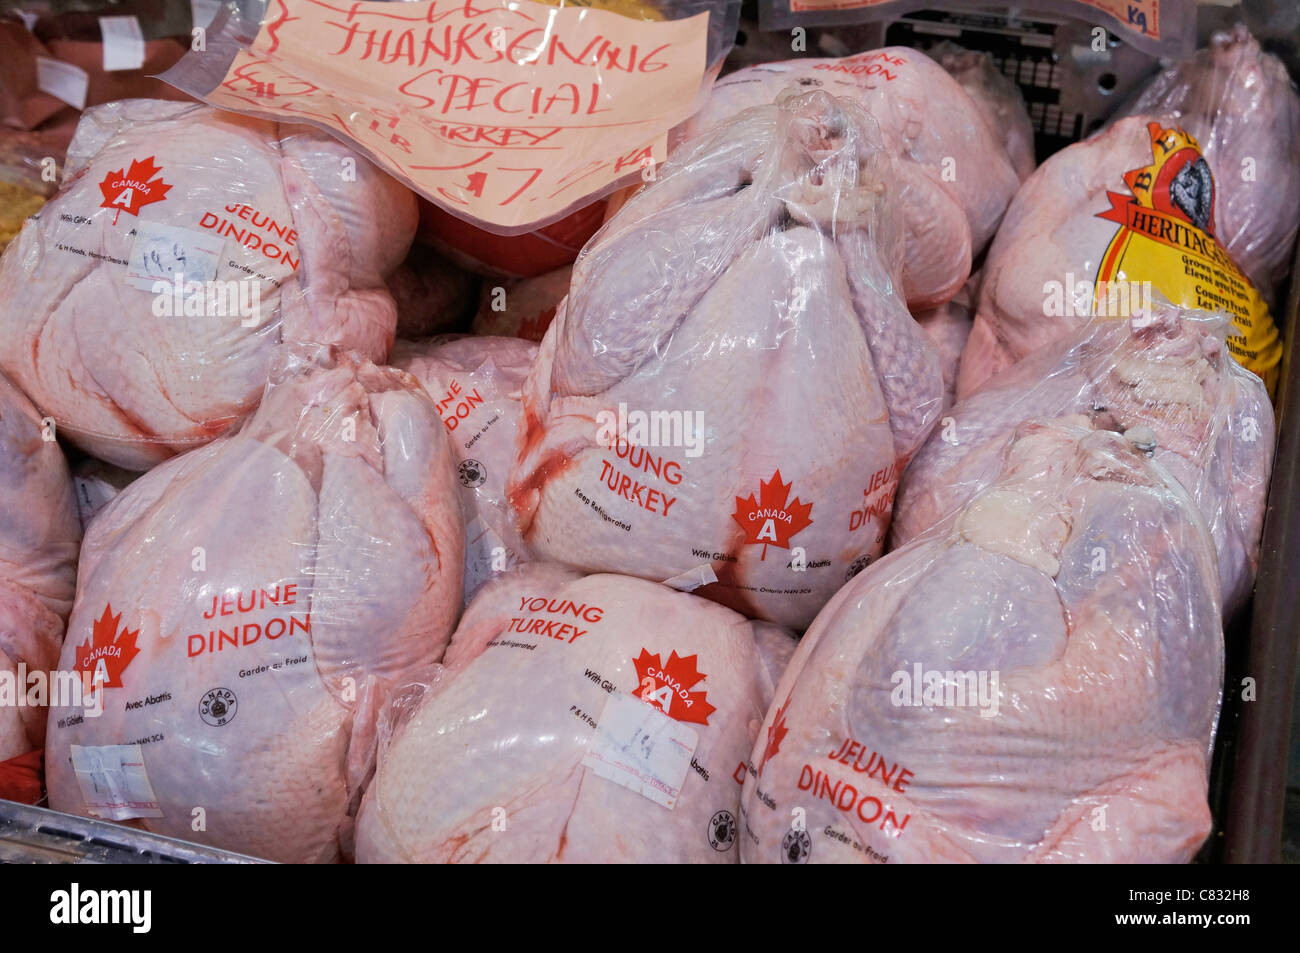 Packaged Turkeys, Canadian Young Turkeys, Grade A, plastic wrapped - Stock Image